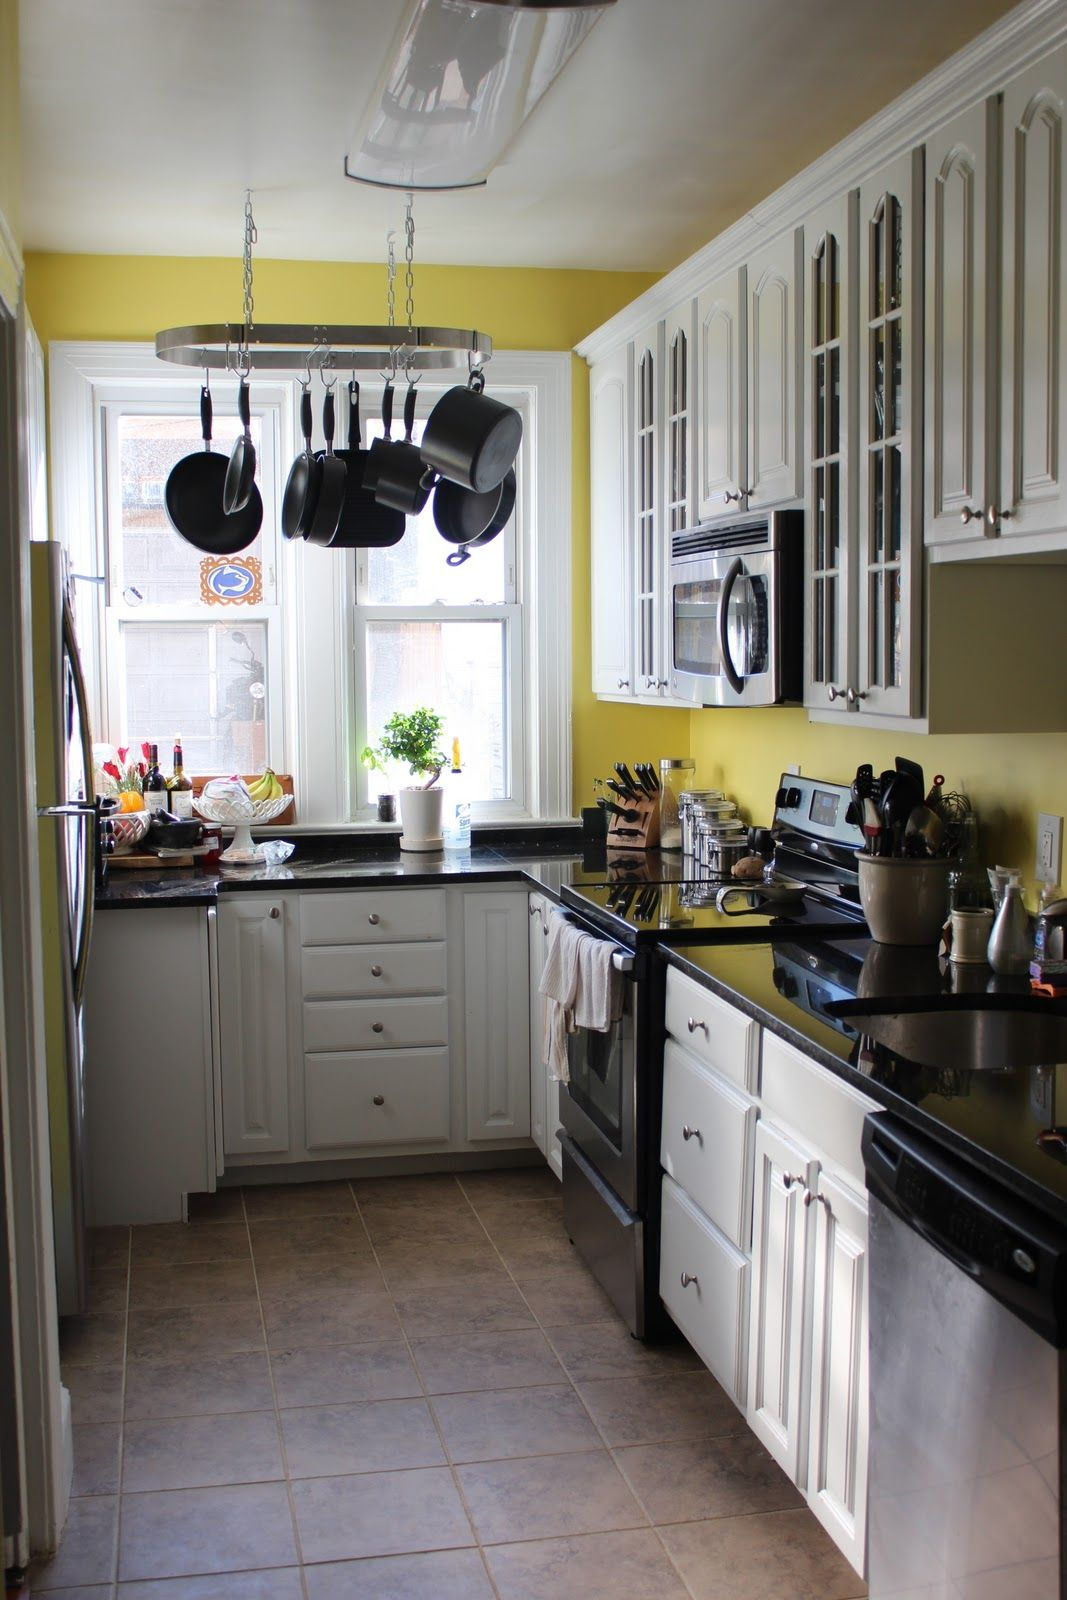 Pinning This To Show Me I Will Not Like This Yellow Kitchen For Me